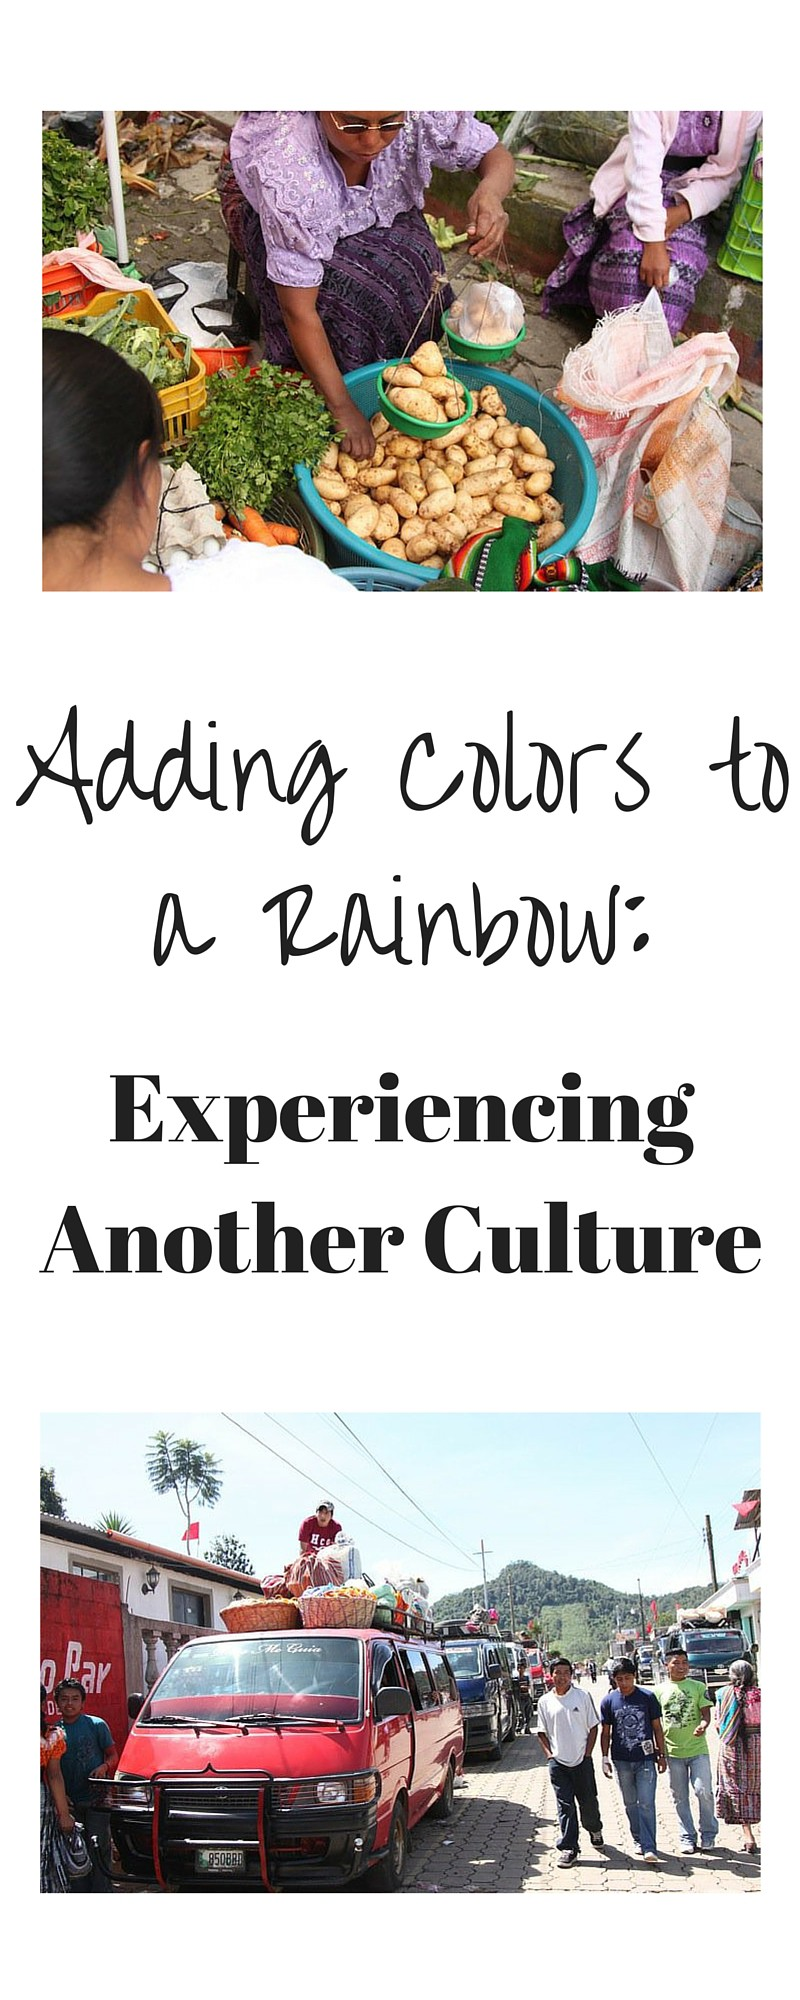 Adding Colors to a Rainbow: Experiencing Another Culture